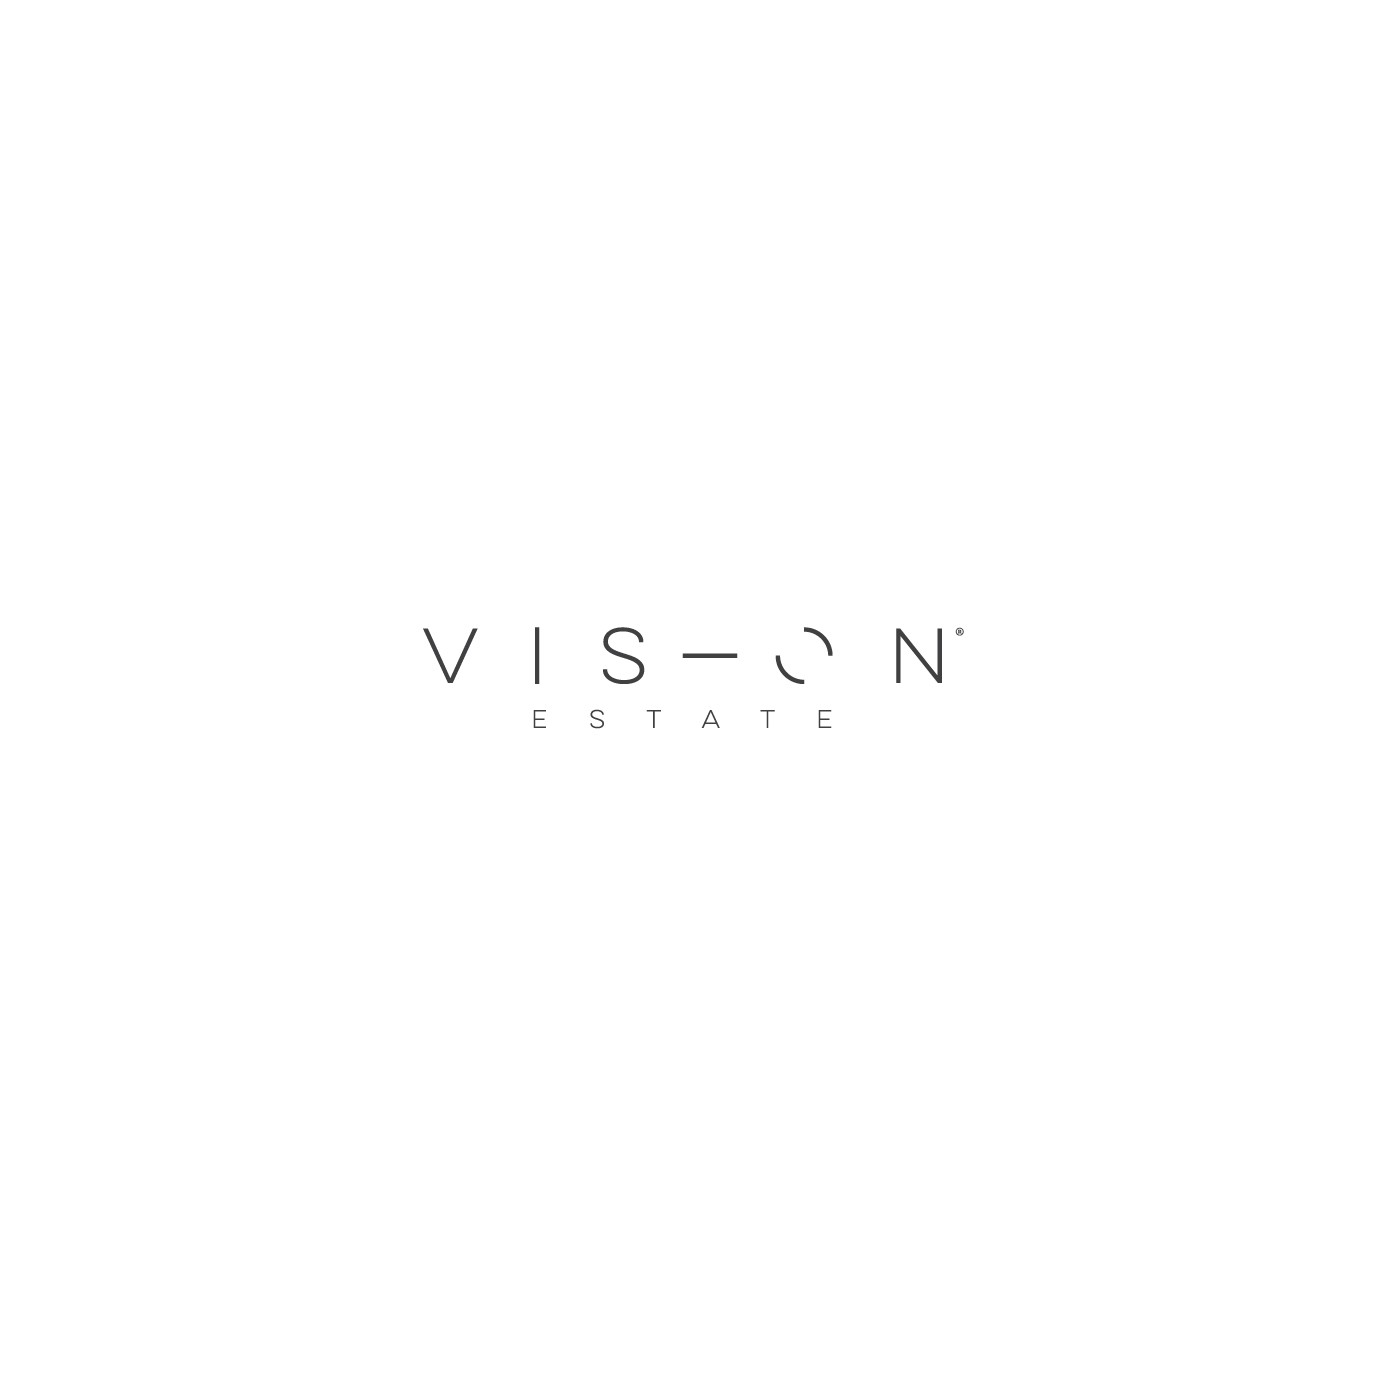 Upgrade the current logo of Vision Estate